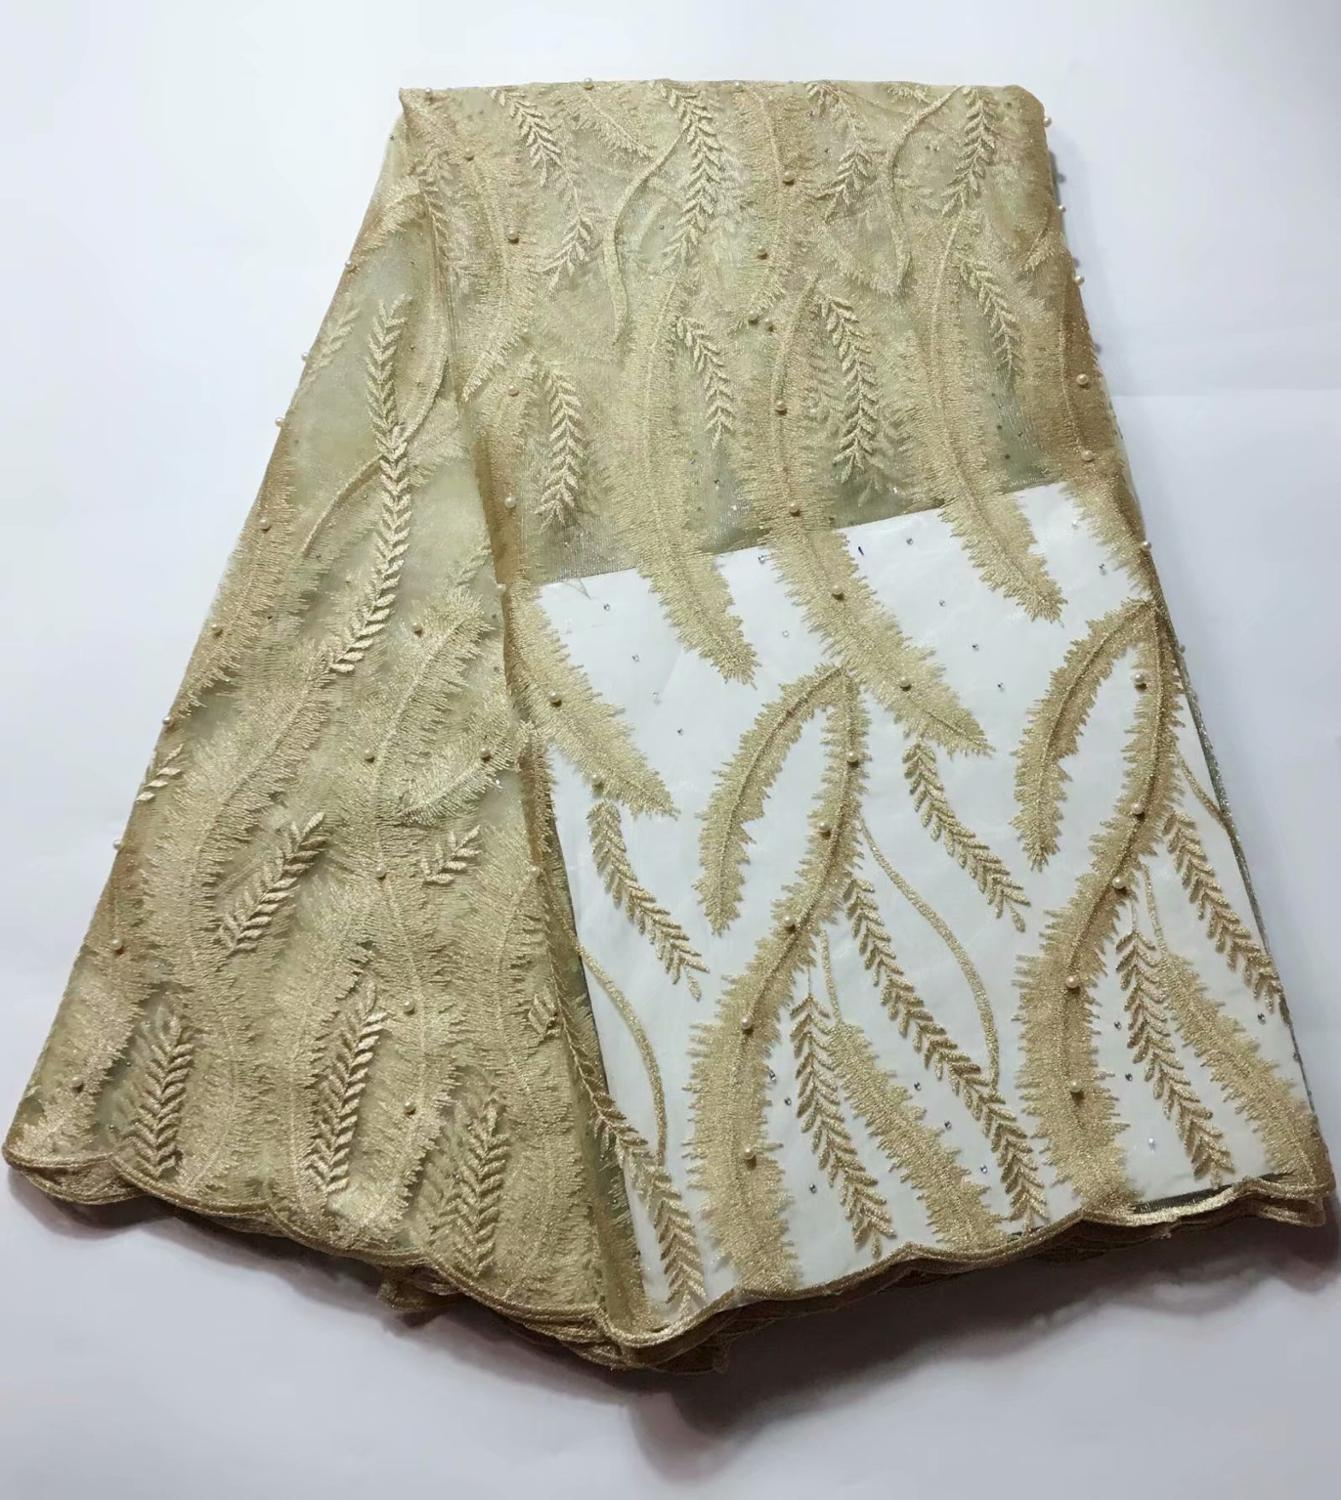 African Lace Solid Pattern 120 Cm Width Fabric For Apparel And Fashion Sold By The 5Yard